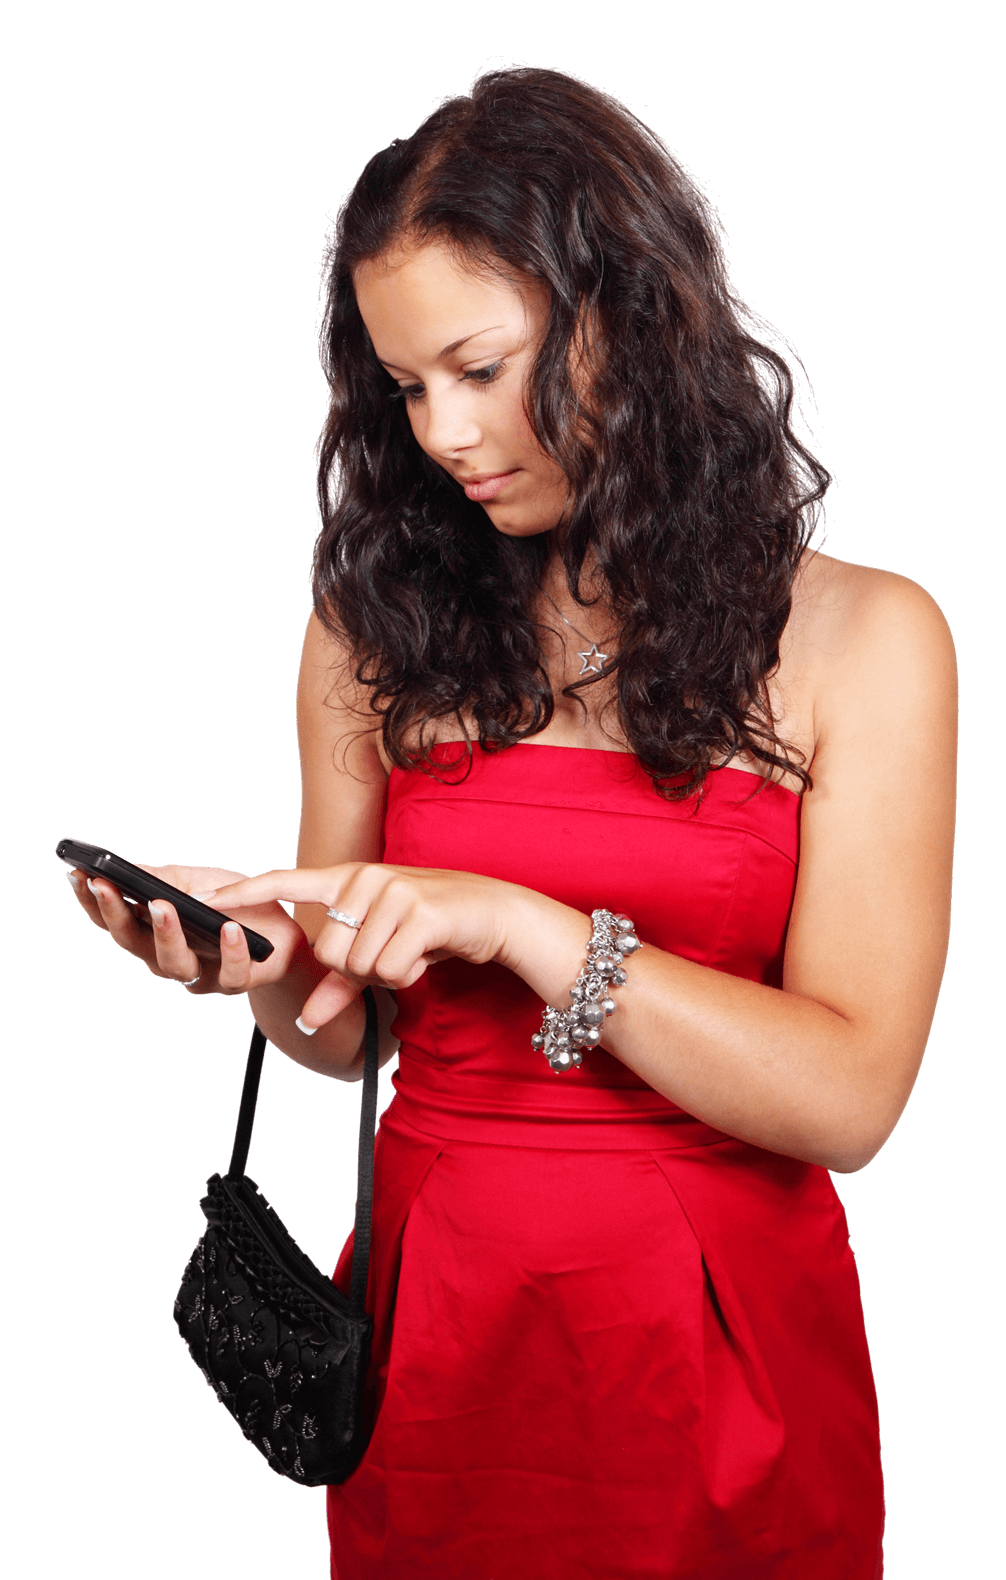 Restaurant mobile marketing ideas